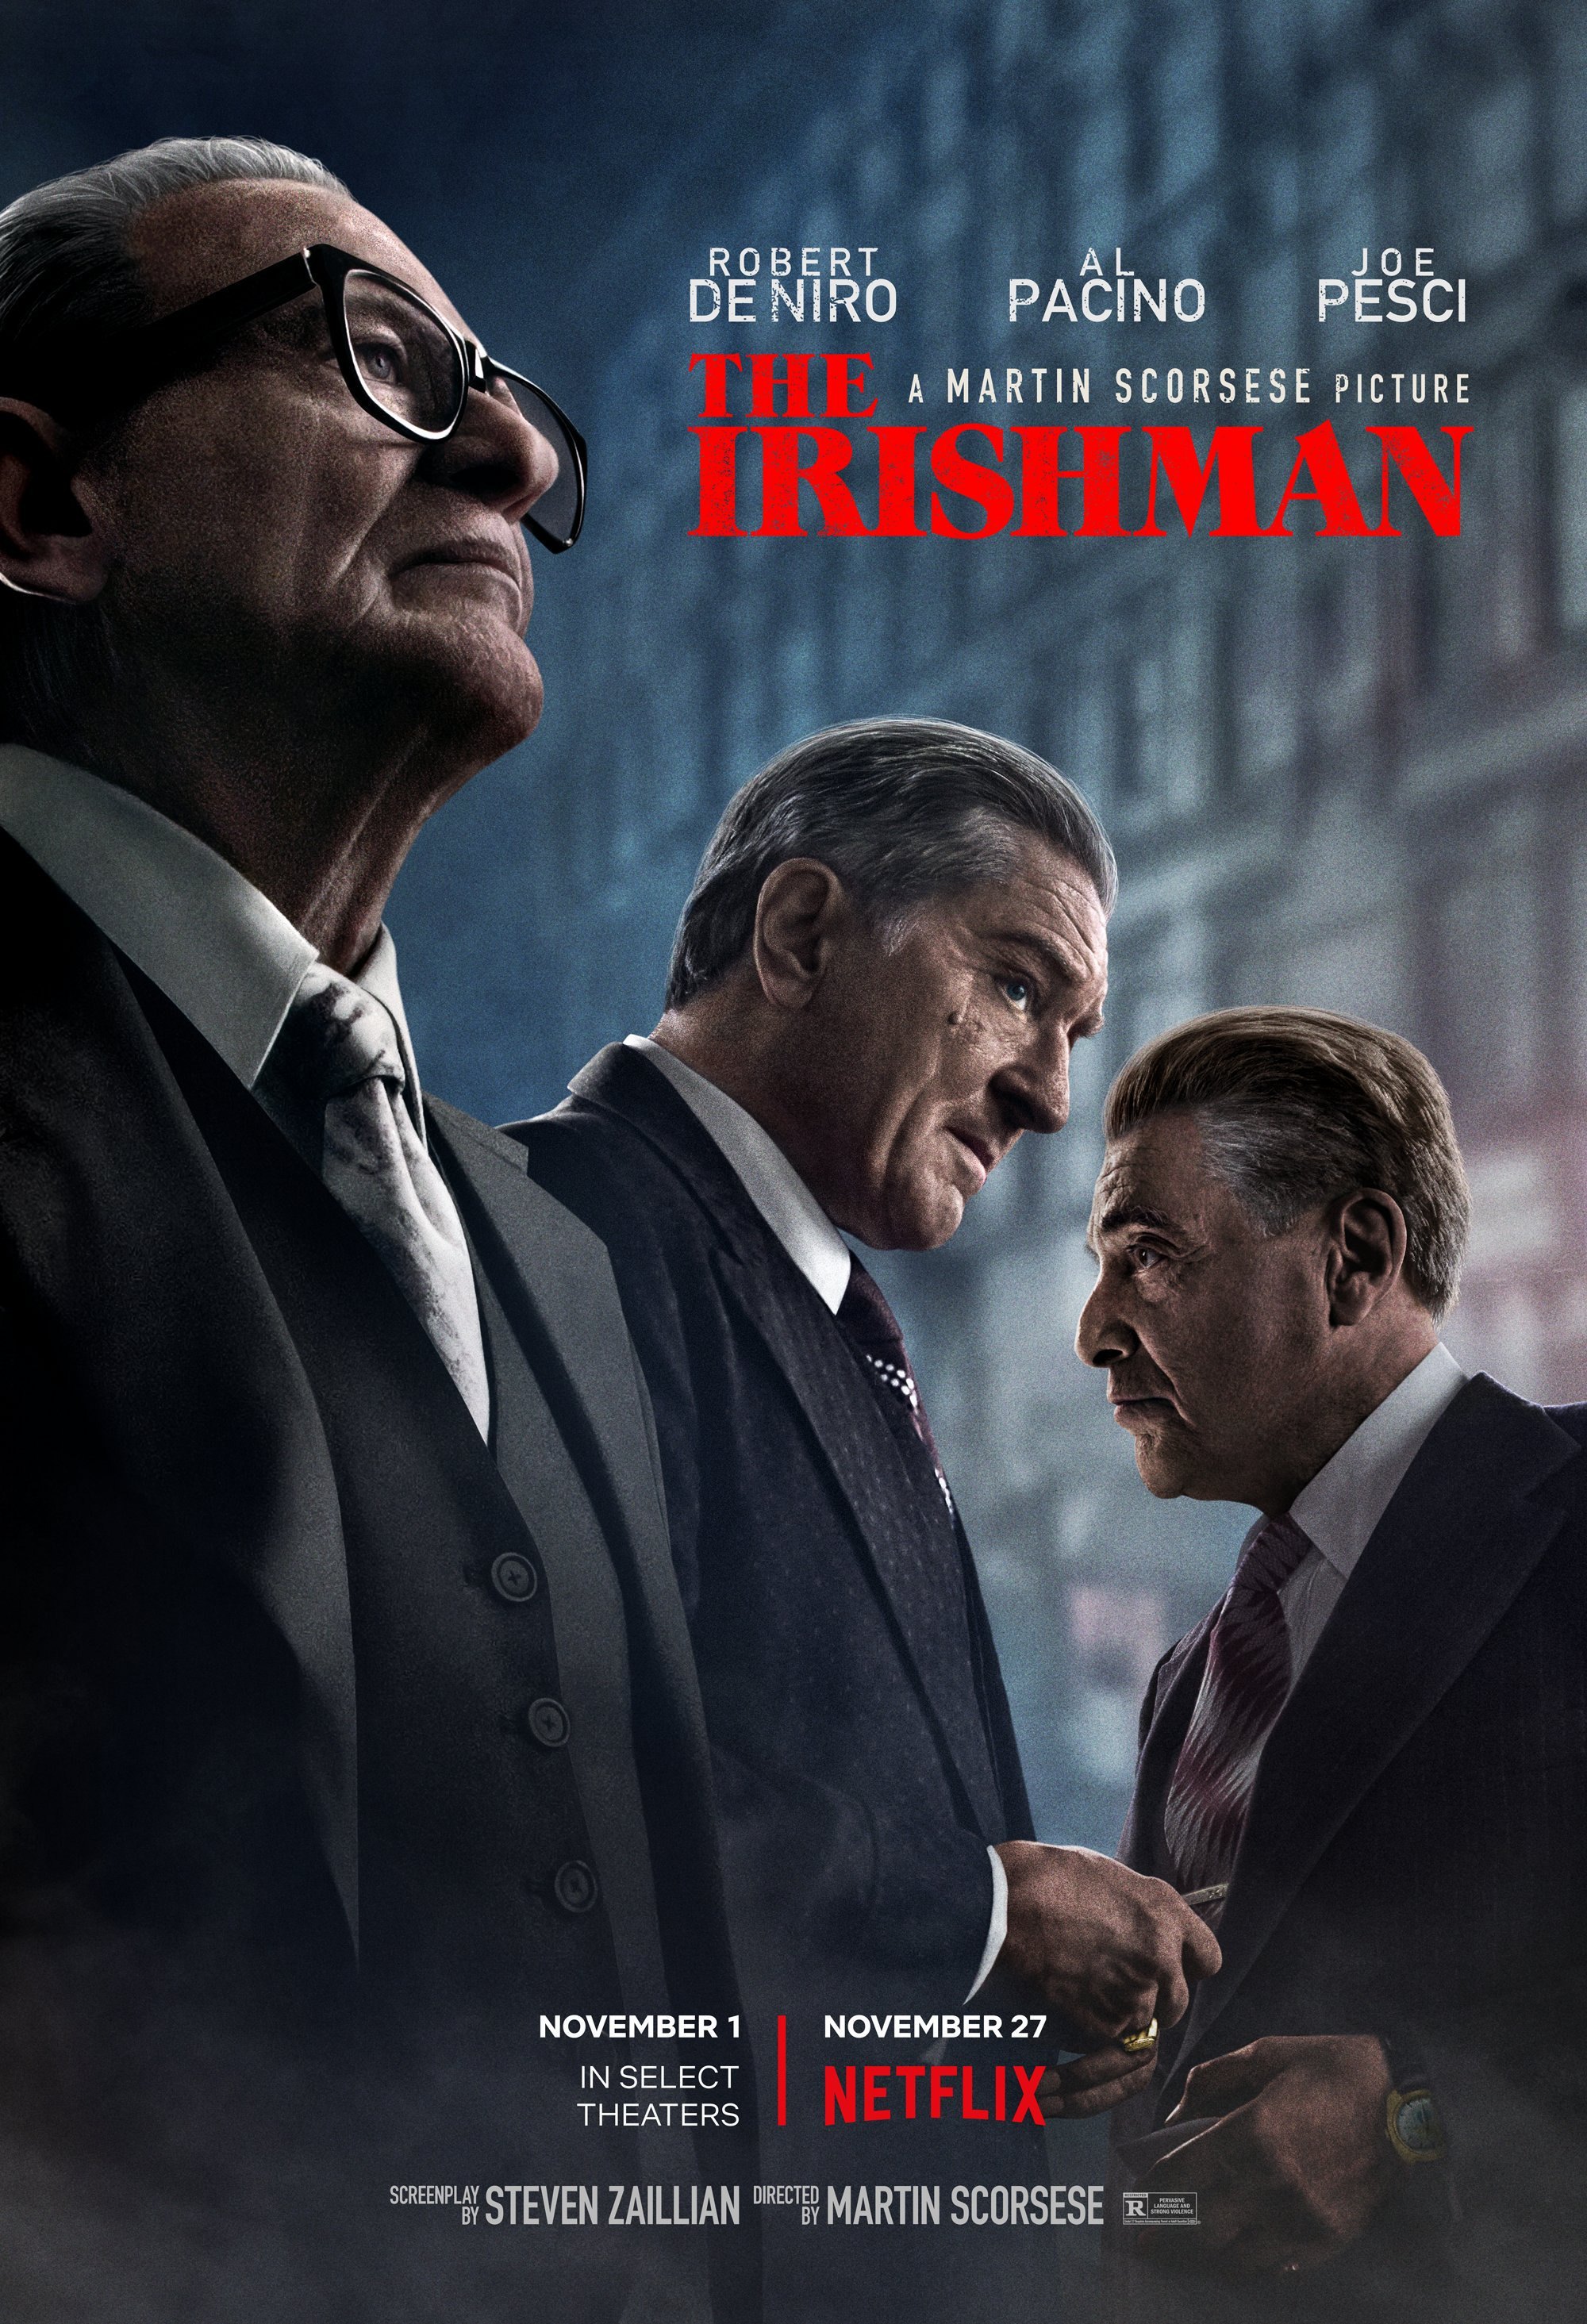 the irishman an unadventurous must see